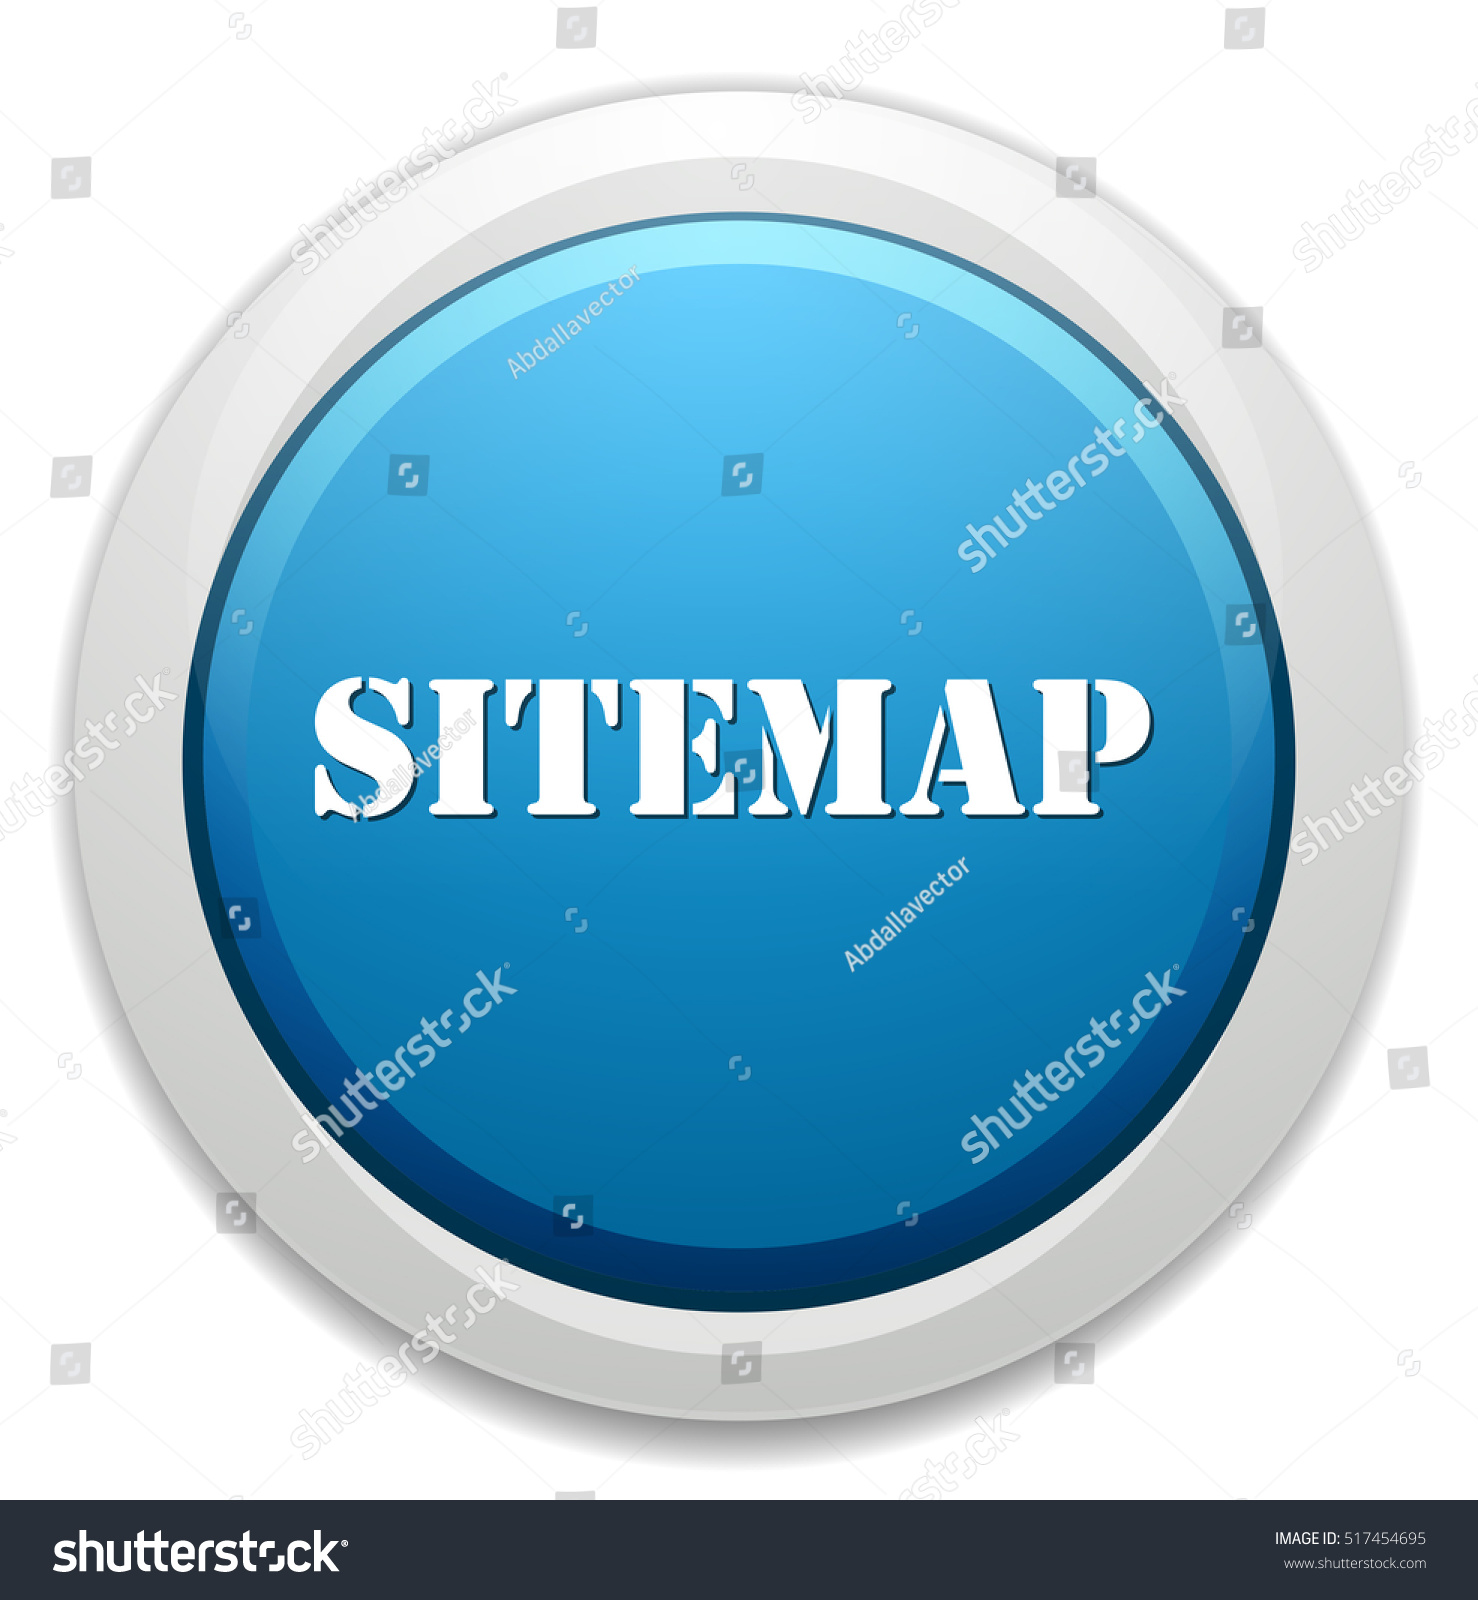 Sitemap Icon Stock Vector Illustration 517454695